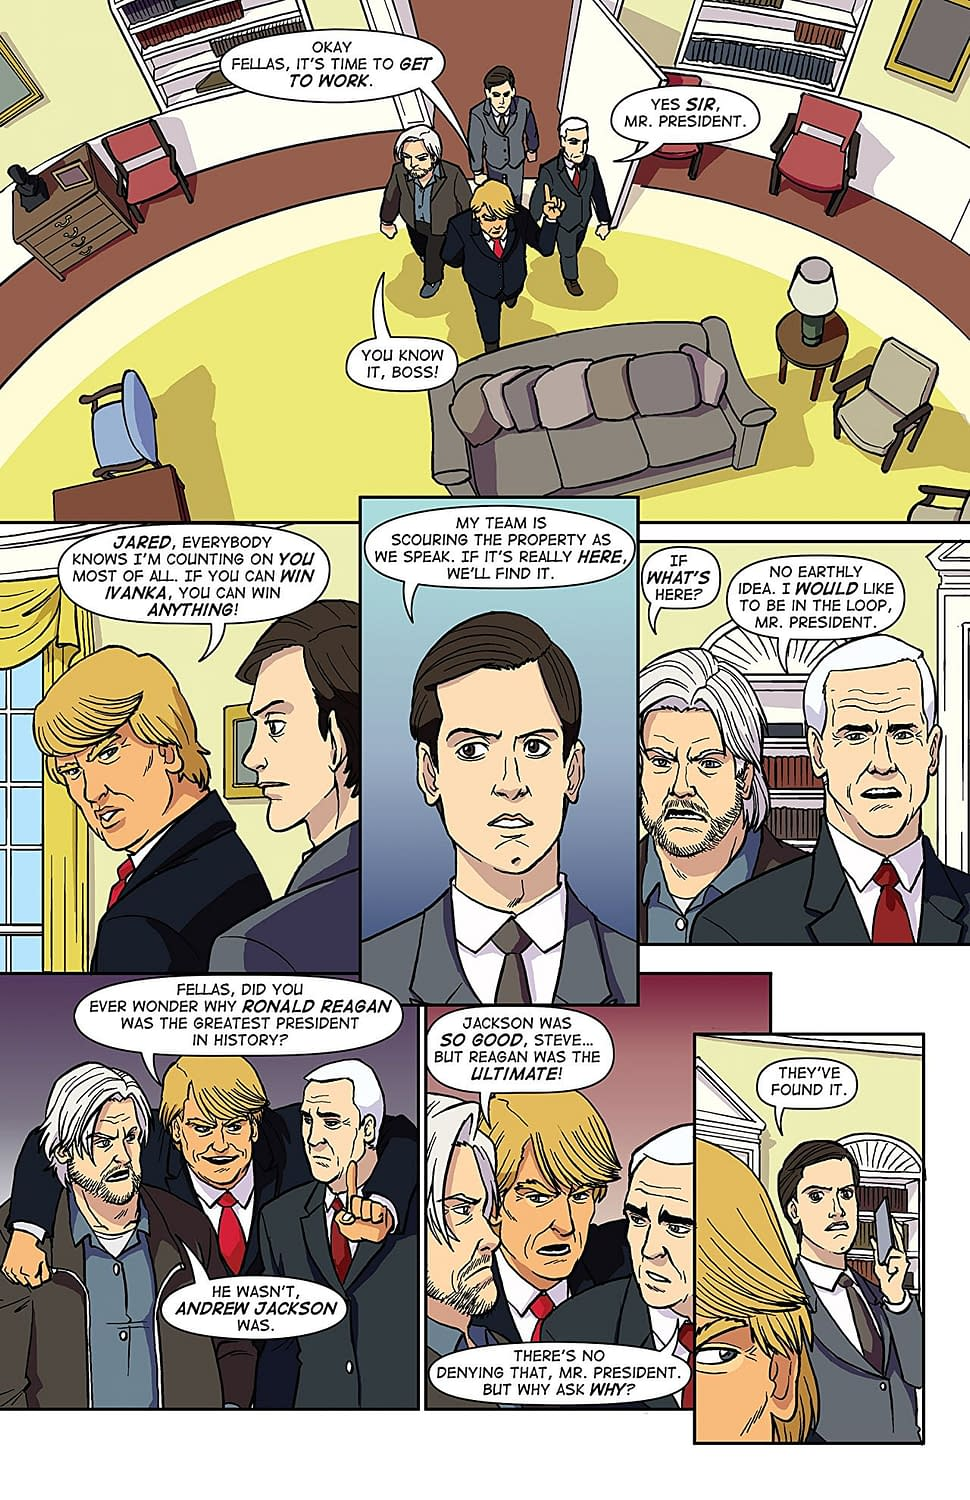 A New Comic Called 'Trump's Titans' Is Some Kind Of Parody, But Of What, And Why?